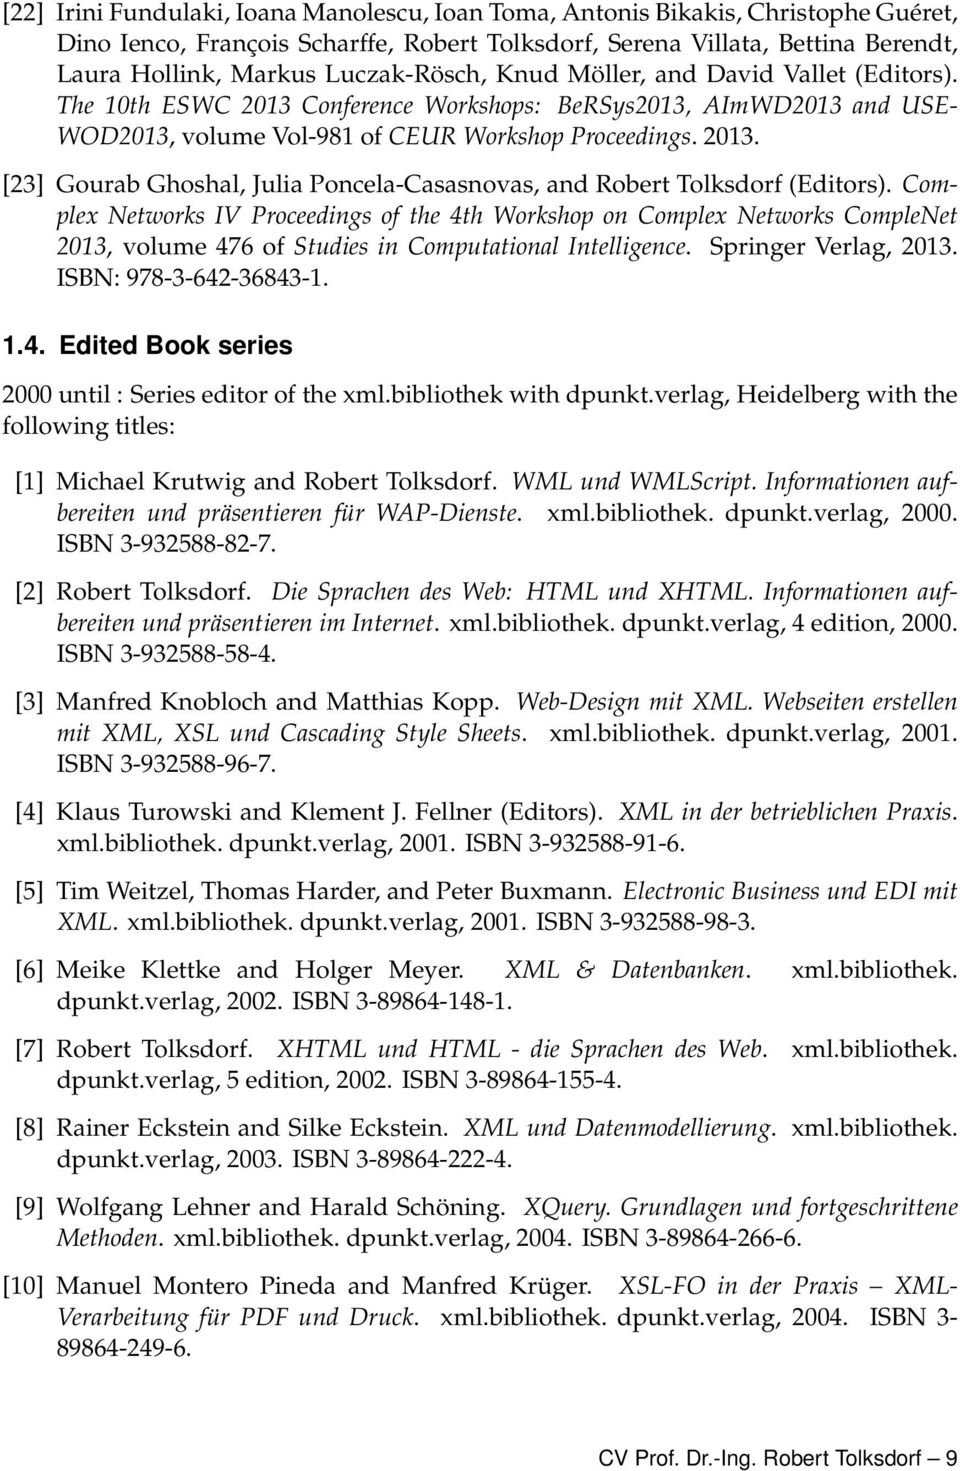 Complex Networks IV Proceedings of the 4th Workshop on Complex Networks CompleNet 2013, volume 476 of Studies in Computational Intelligence. Springer Verlag, 2013. ISBN: 978-3-642-36843-1. 1.4. Edited Book series 2000 until : Series editor of the xml.